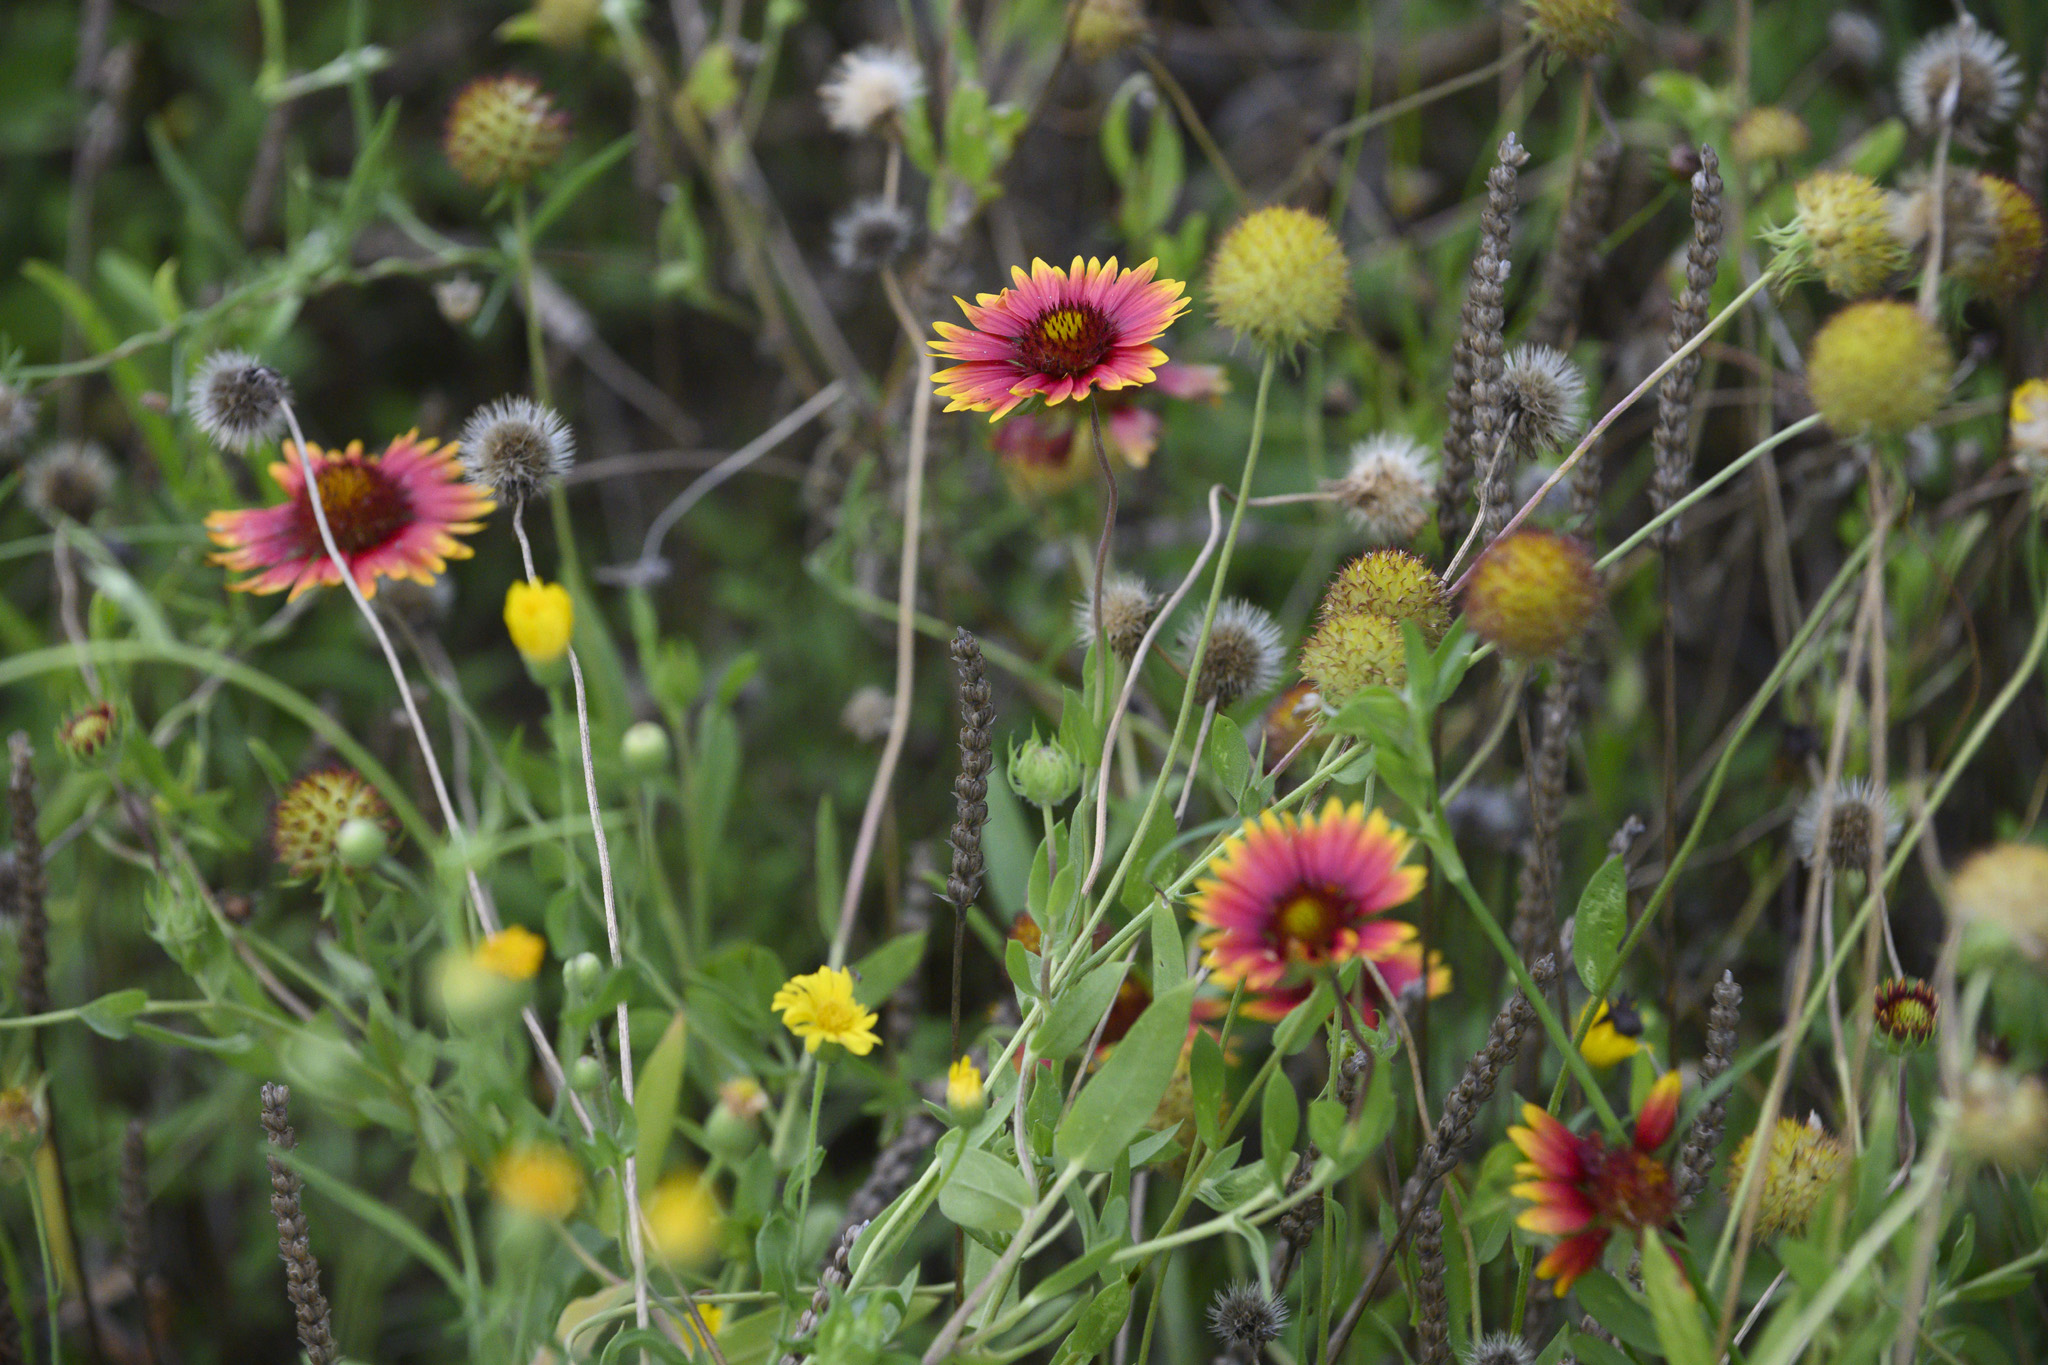 Wildflowers in the research field.